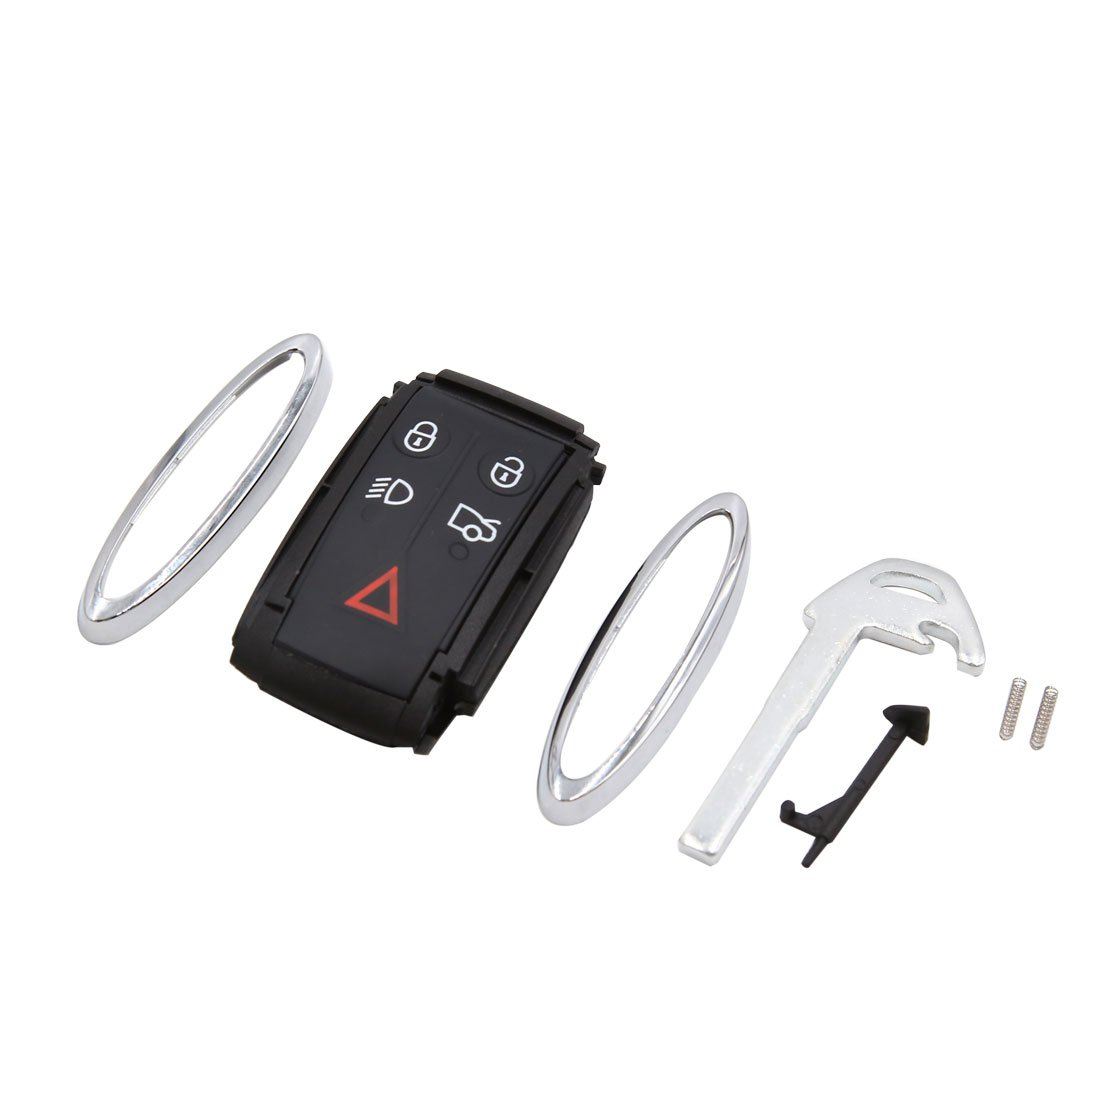 uxcell 5 Button Remote Control Key Case Shell Protective Cover with Key for Jaguar